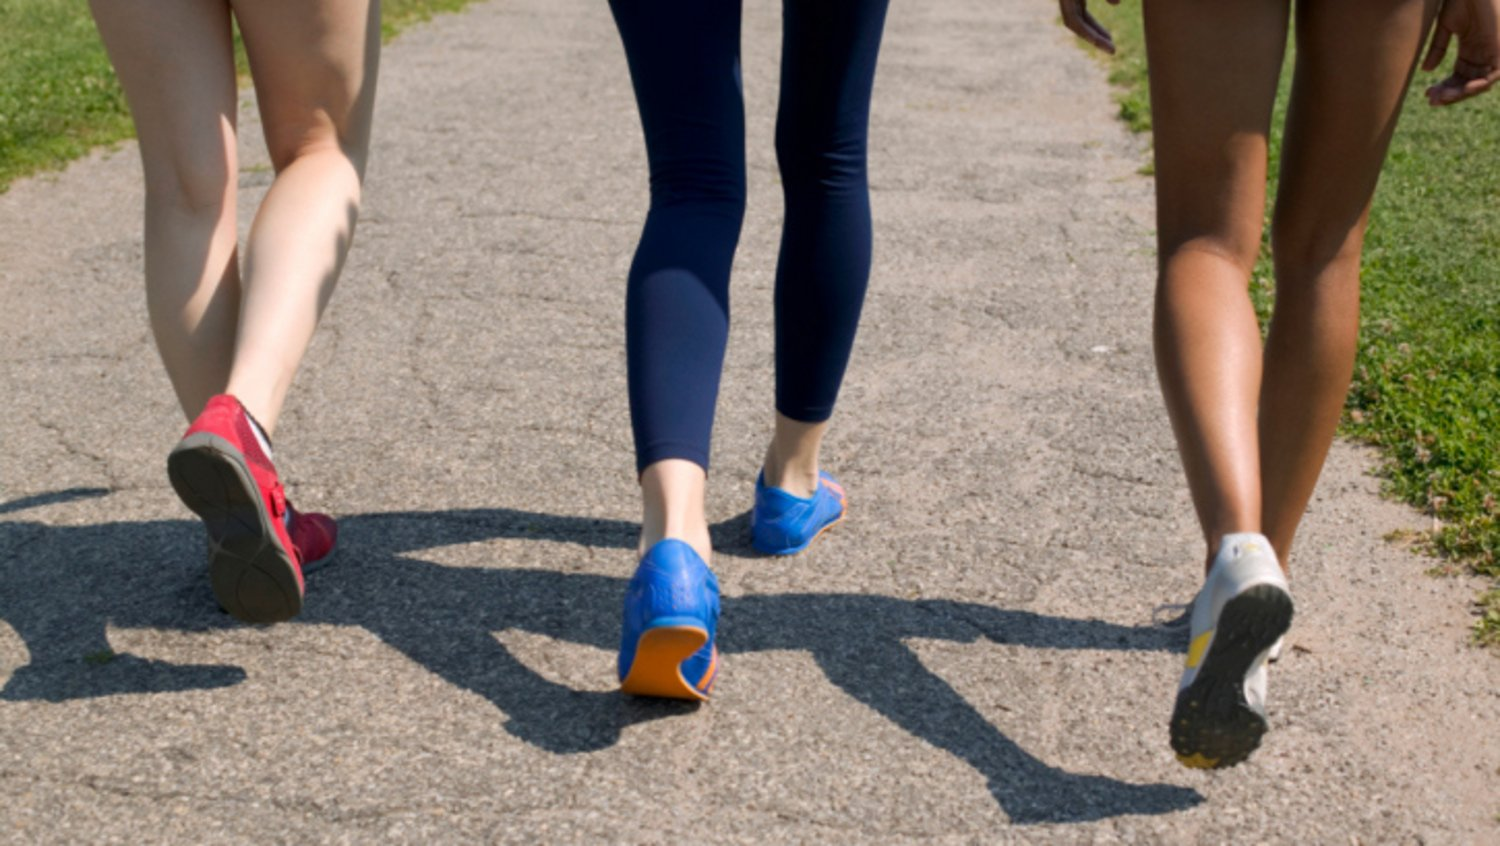 healing-group walking-image